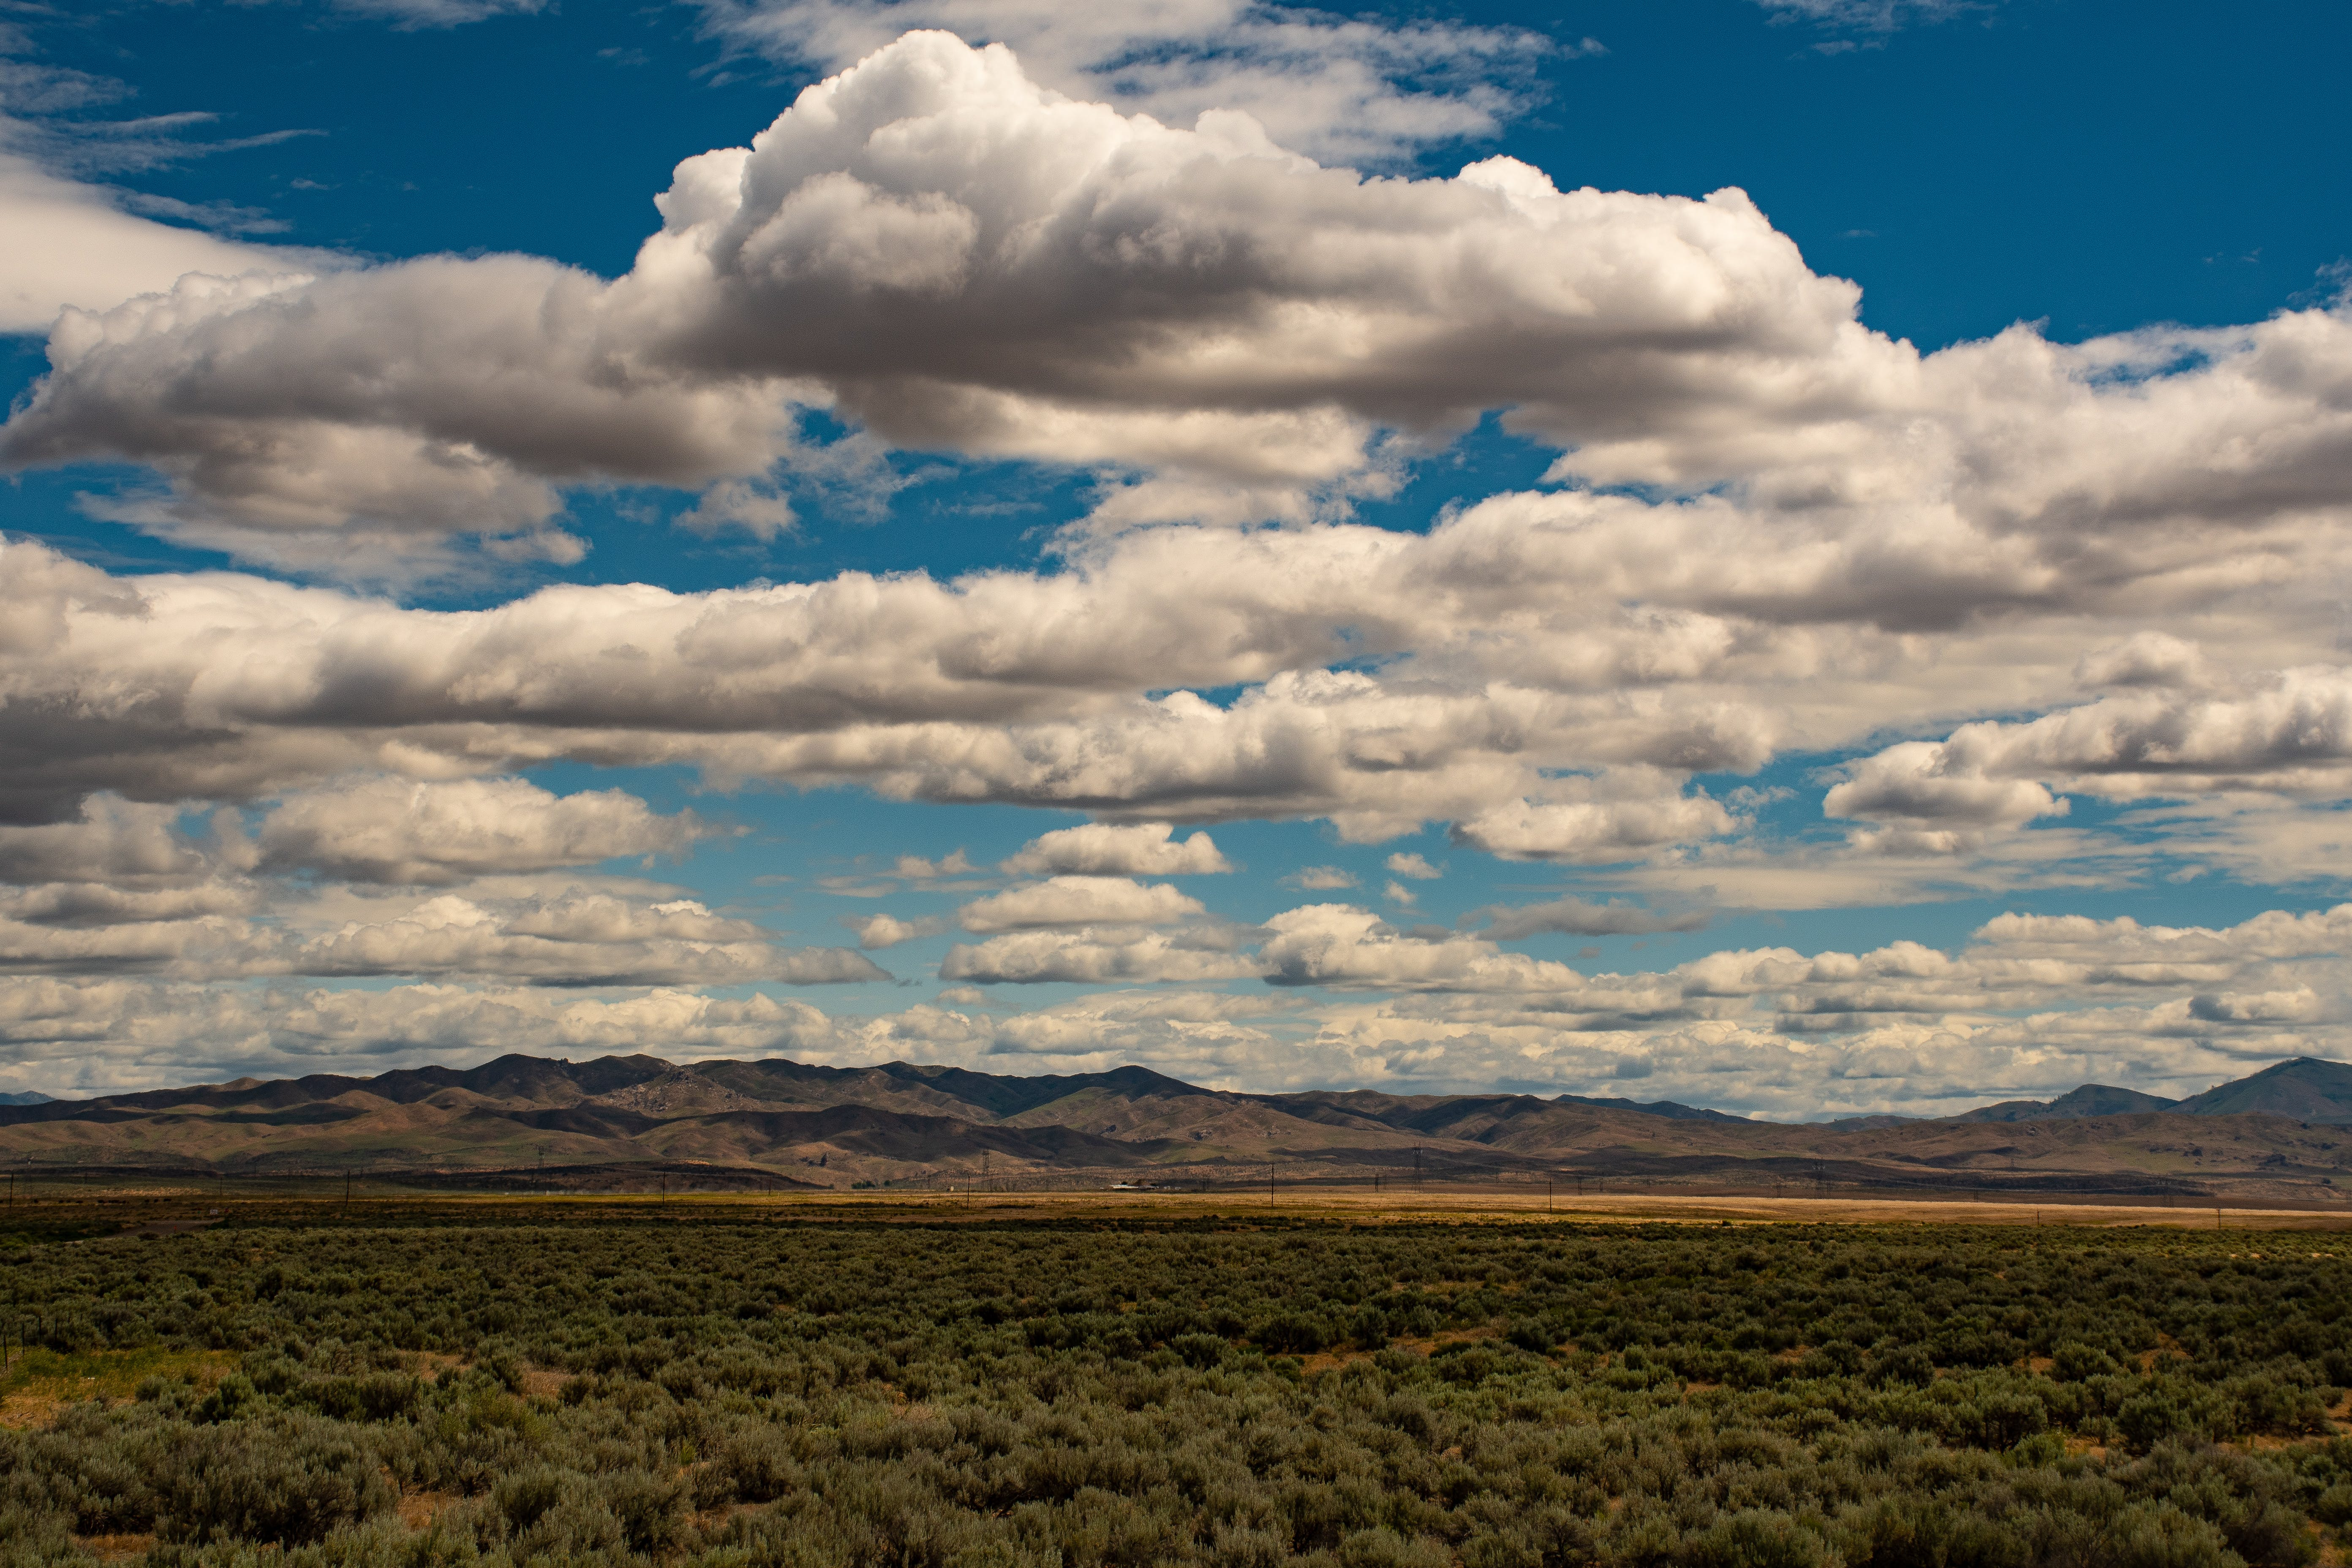 Free stock photo of landscape, mountains, nature, clouds